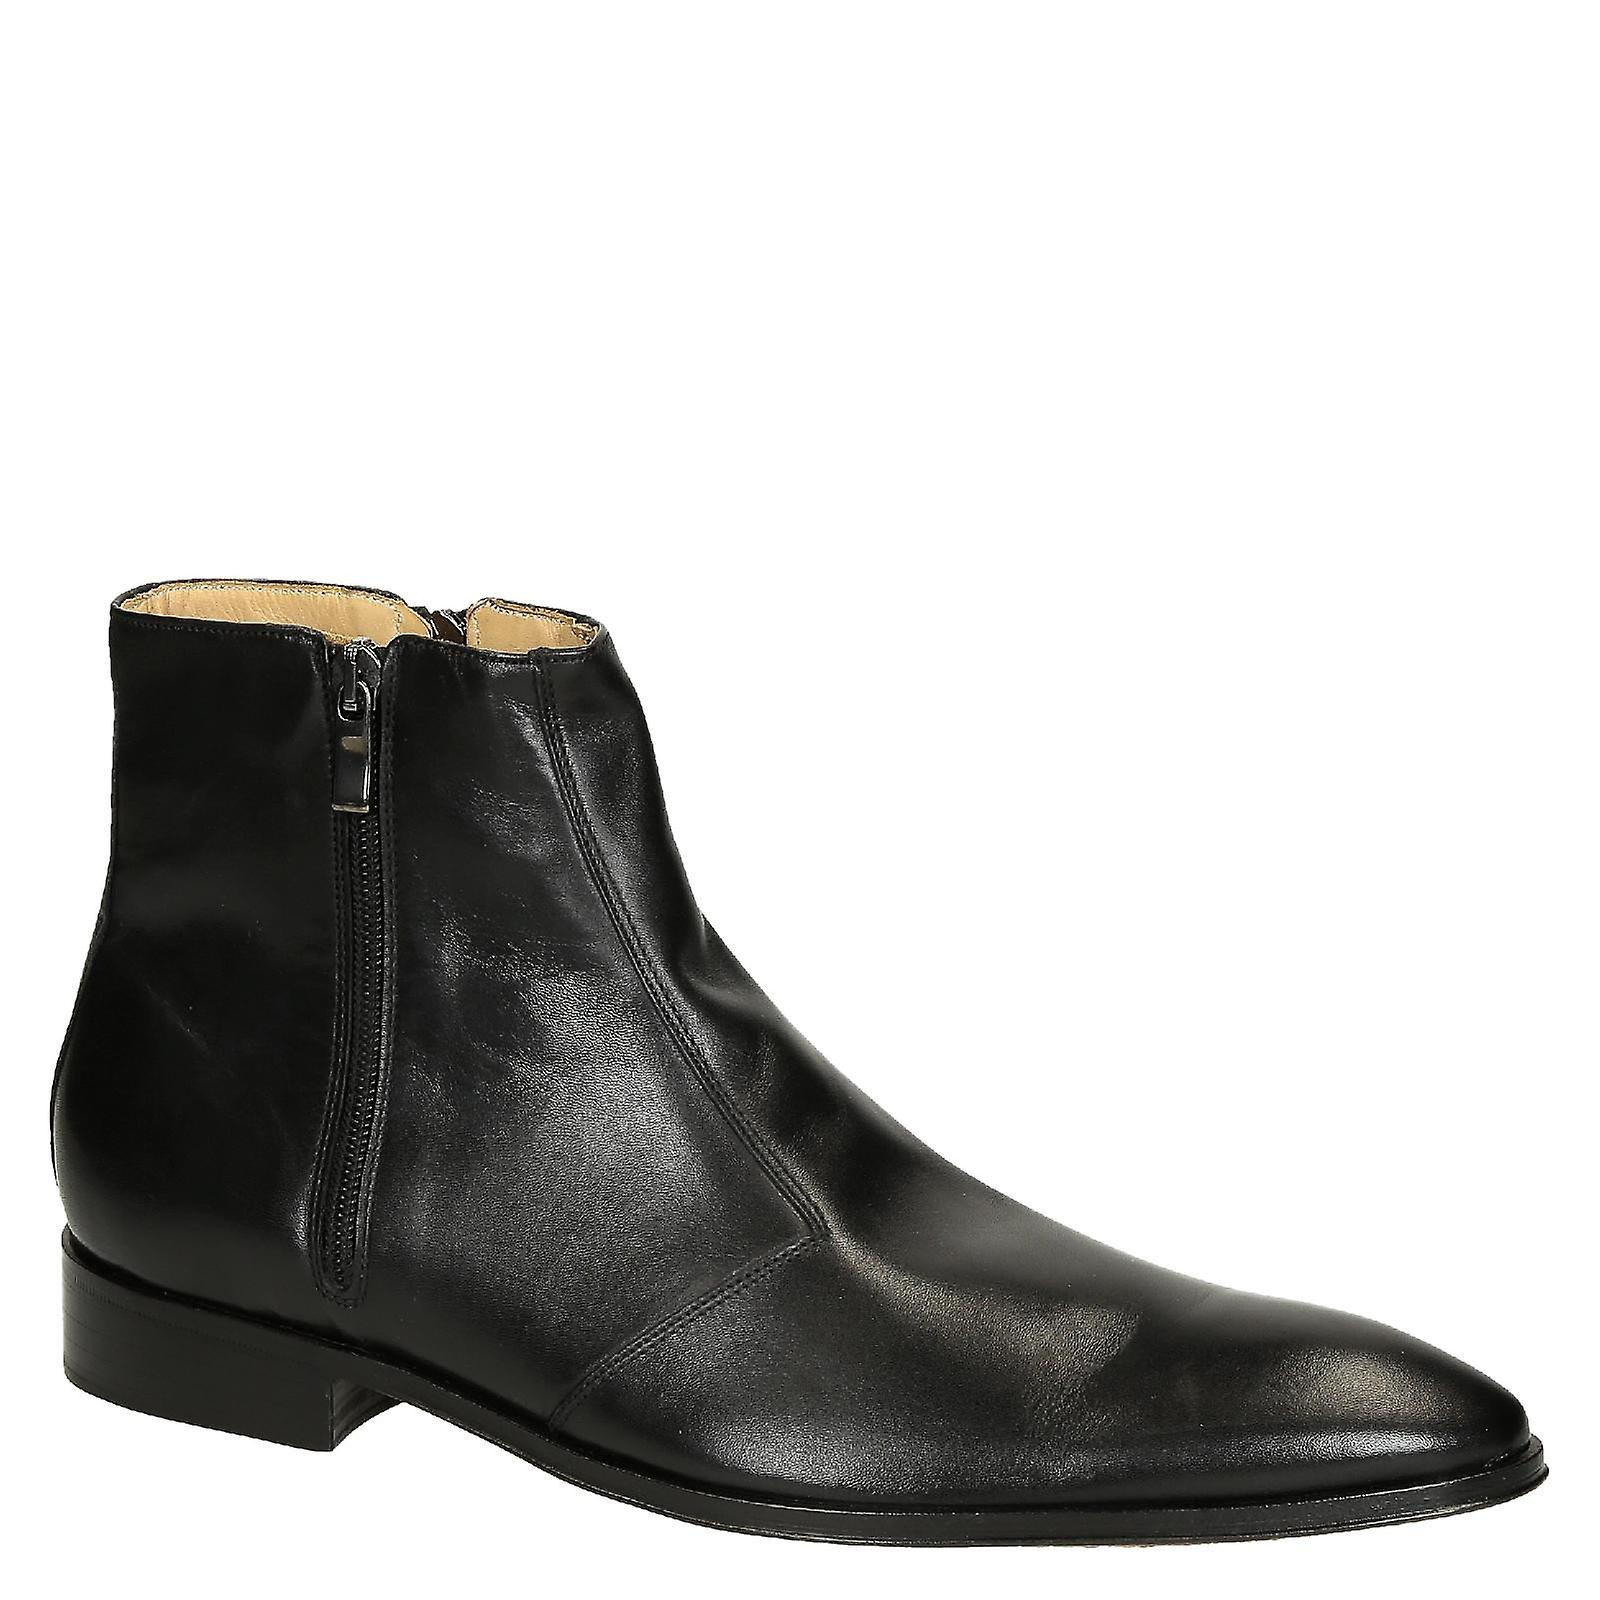 Black calf leather men's pointed toe dress boots